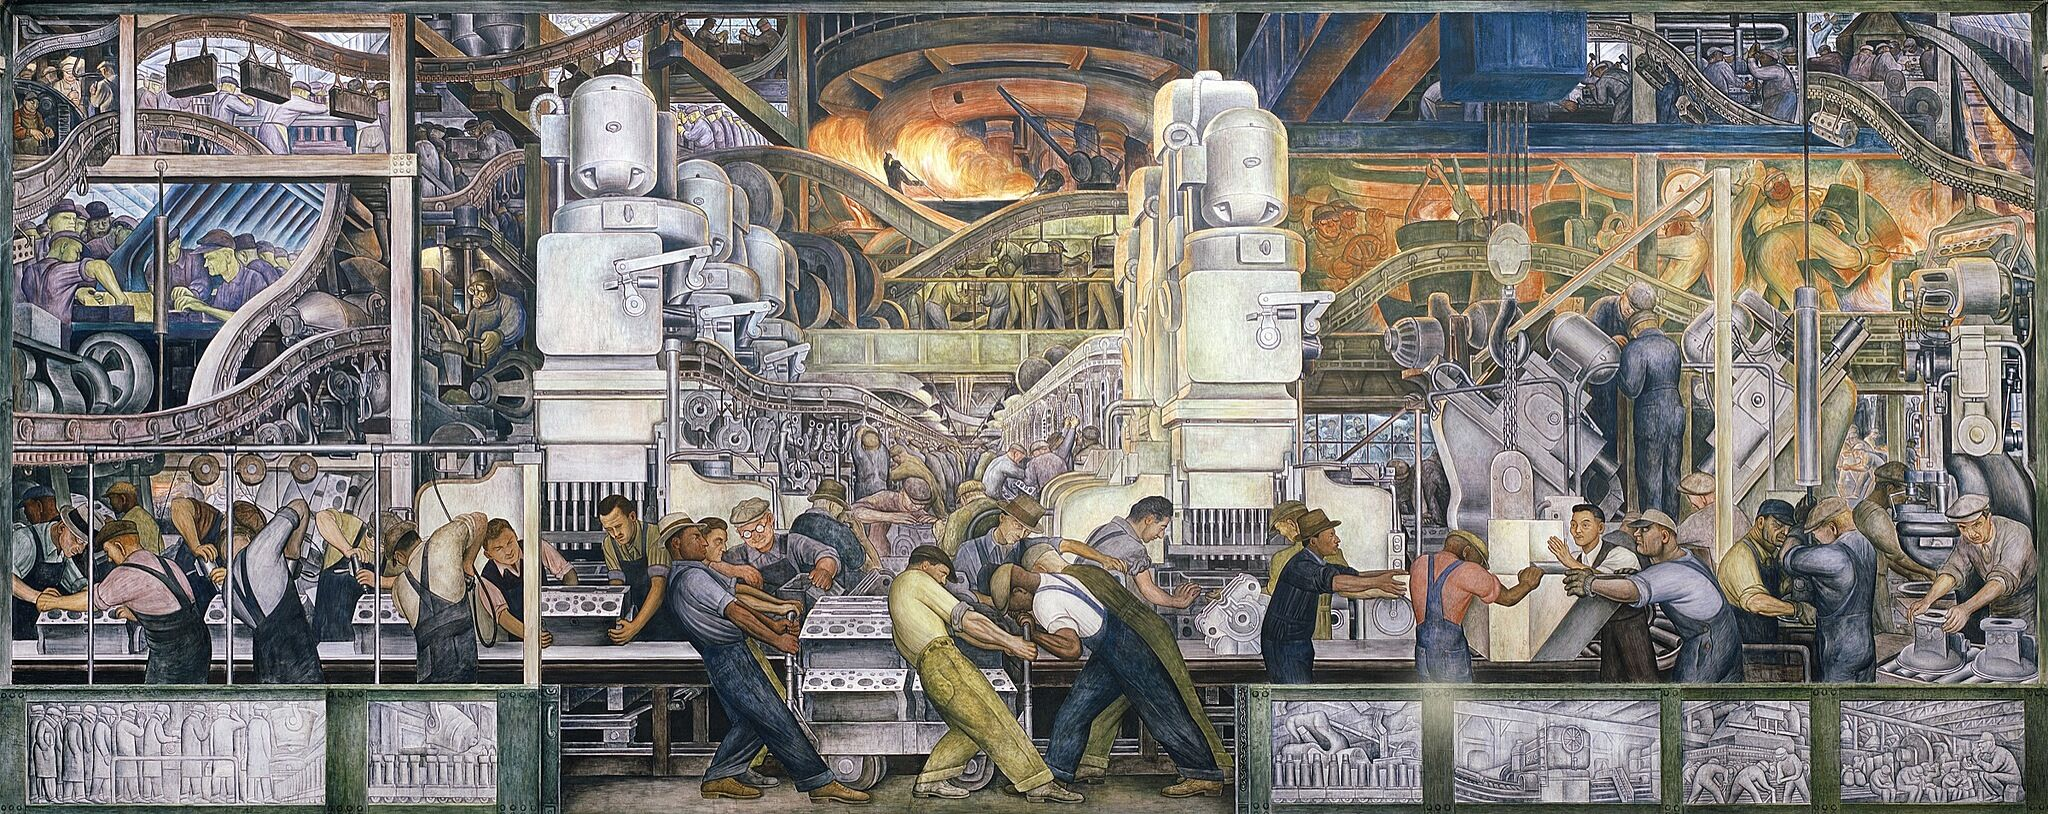 A large mural depicting a factory full of people working.